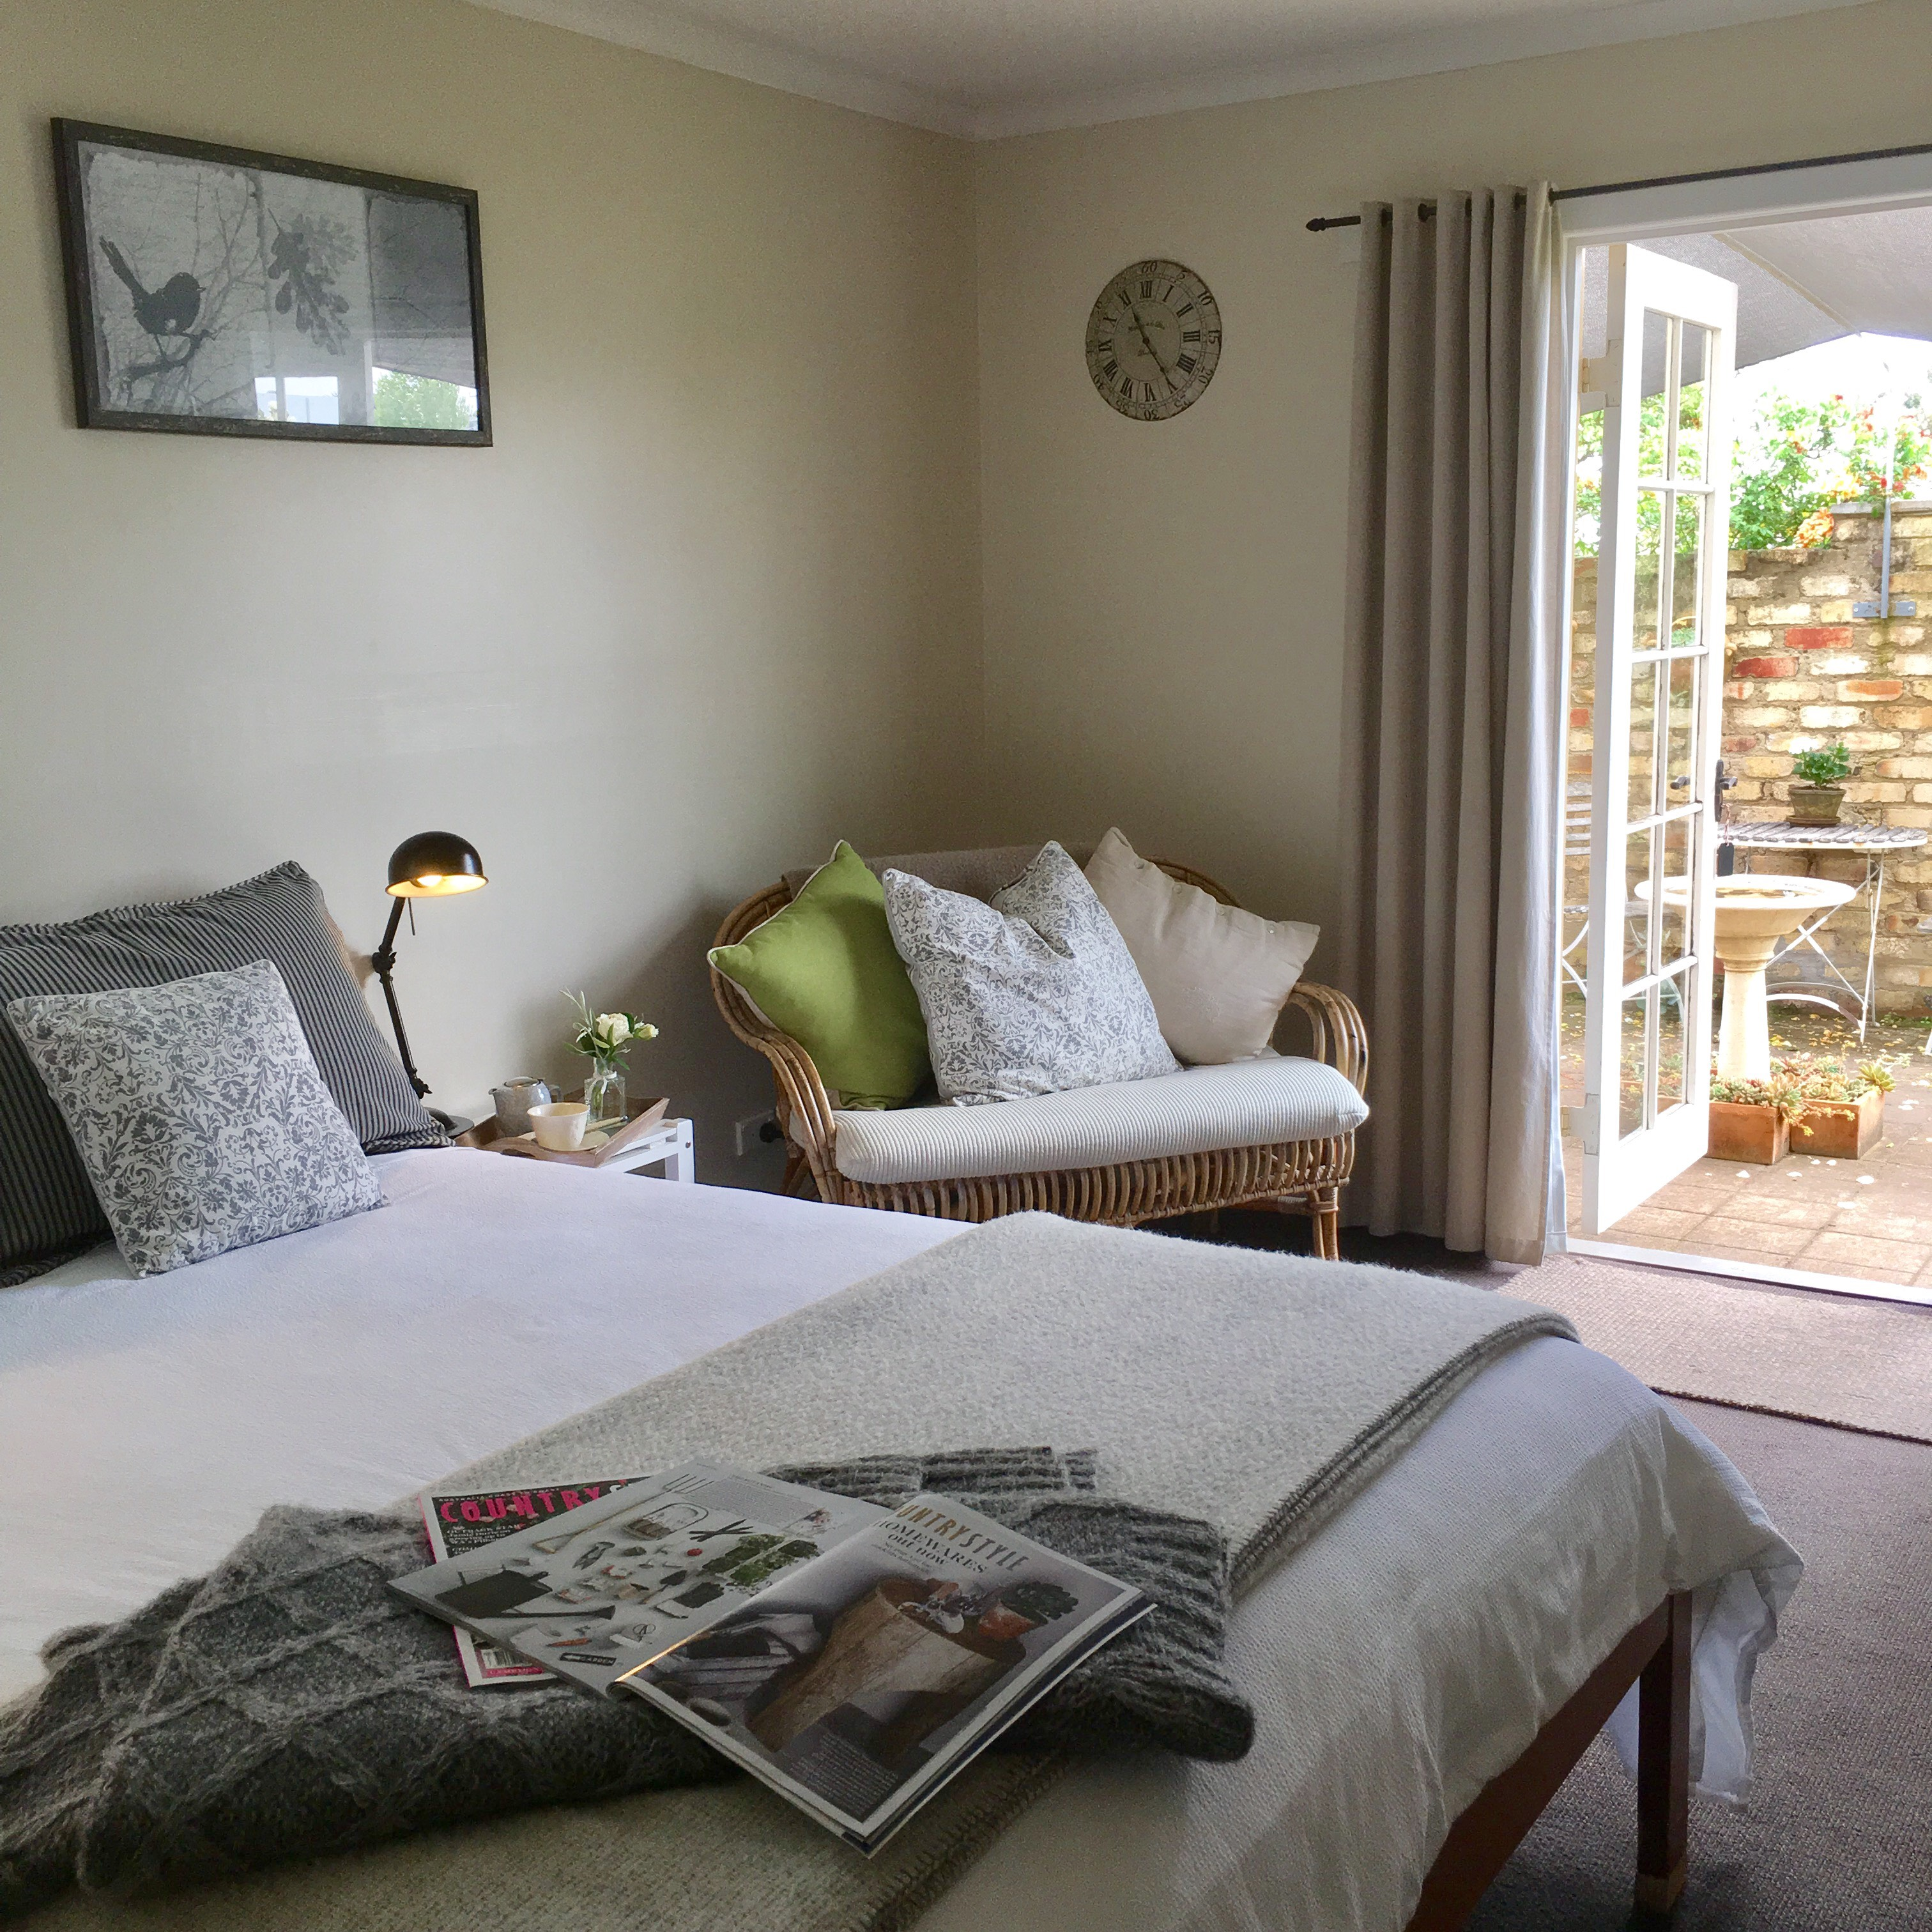 Aggies Bed and Breakfast - Hervey Bay Accommodation